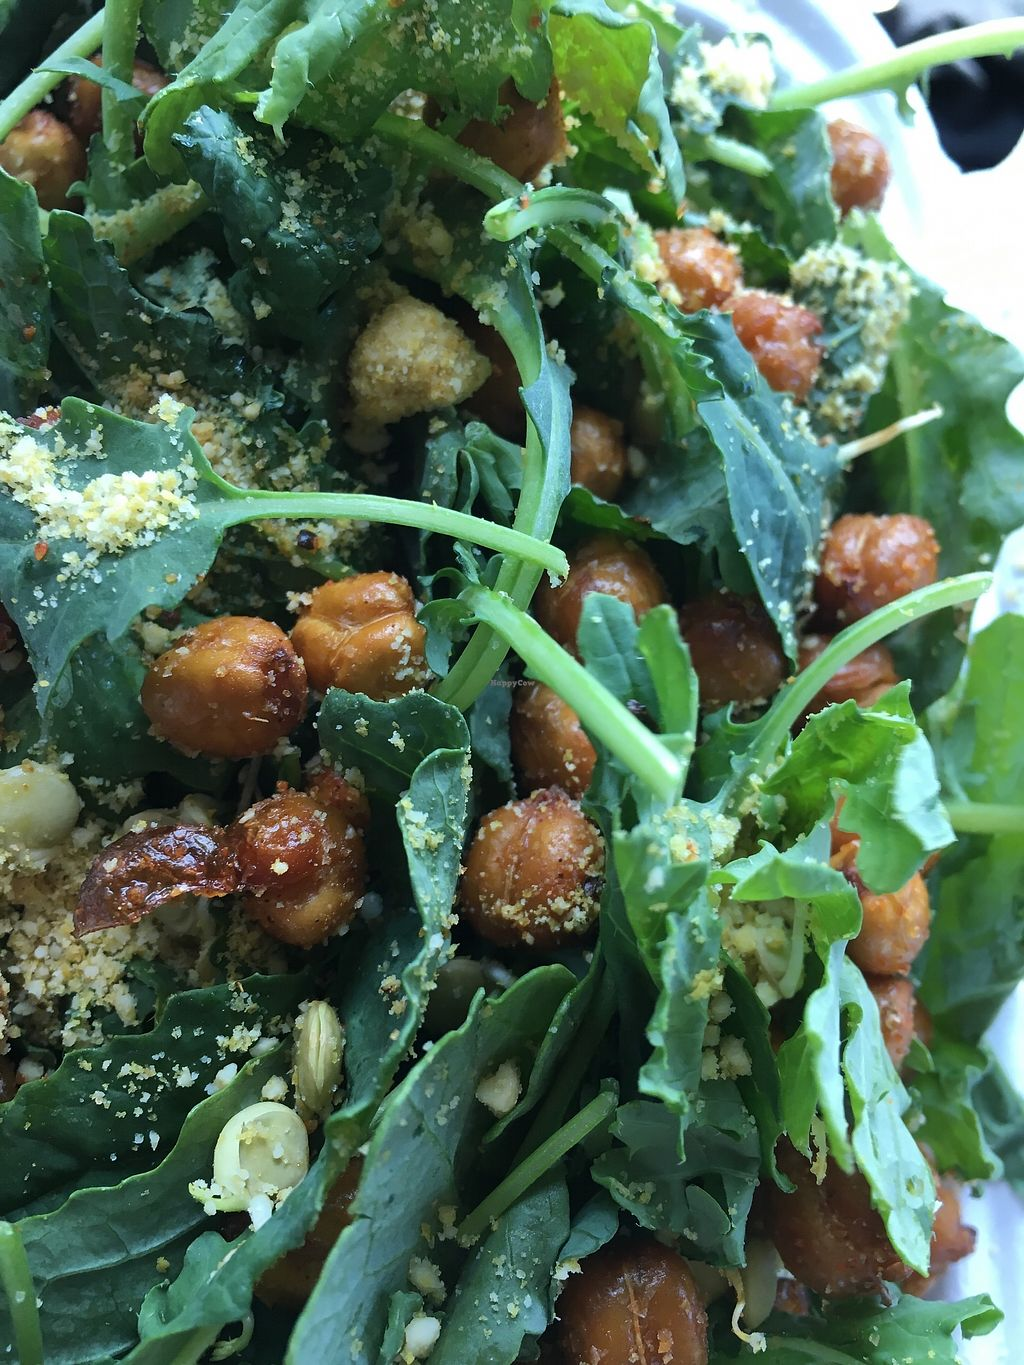 """Photo of Stall 11  by <a href=""""/members/profile/cookiem"""">cookiem</a> <br/>Caesar salad  <br/> June 20, 2017  - <a href='/contact/abuse/image/85625/271477'>Report</a>"""